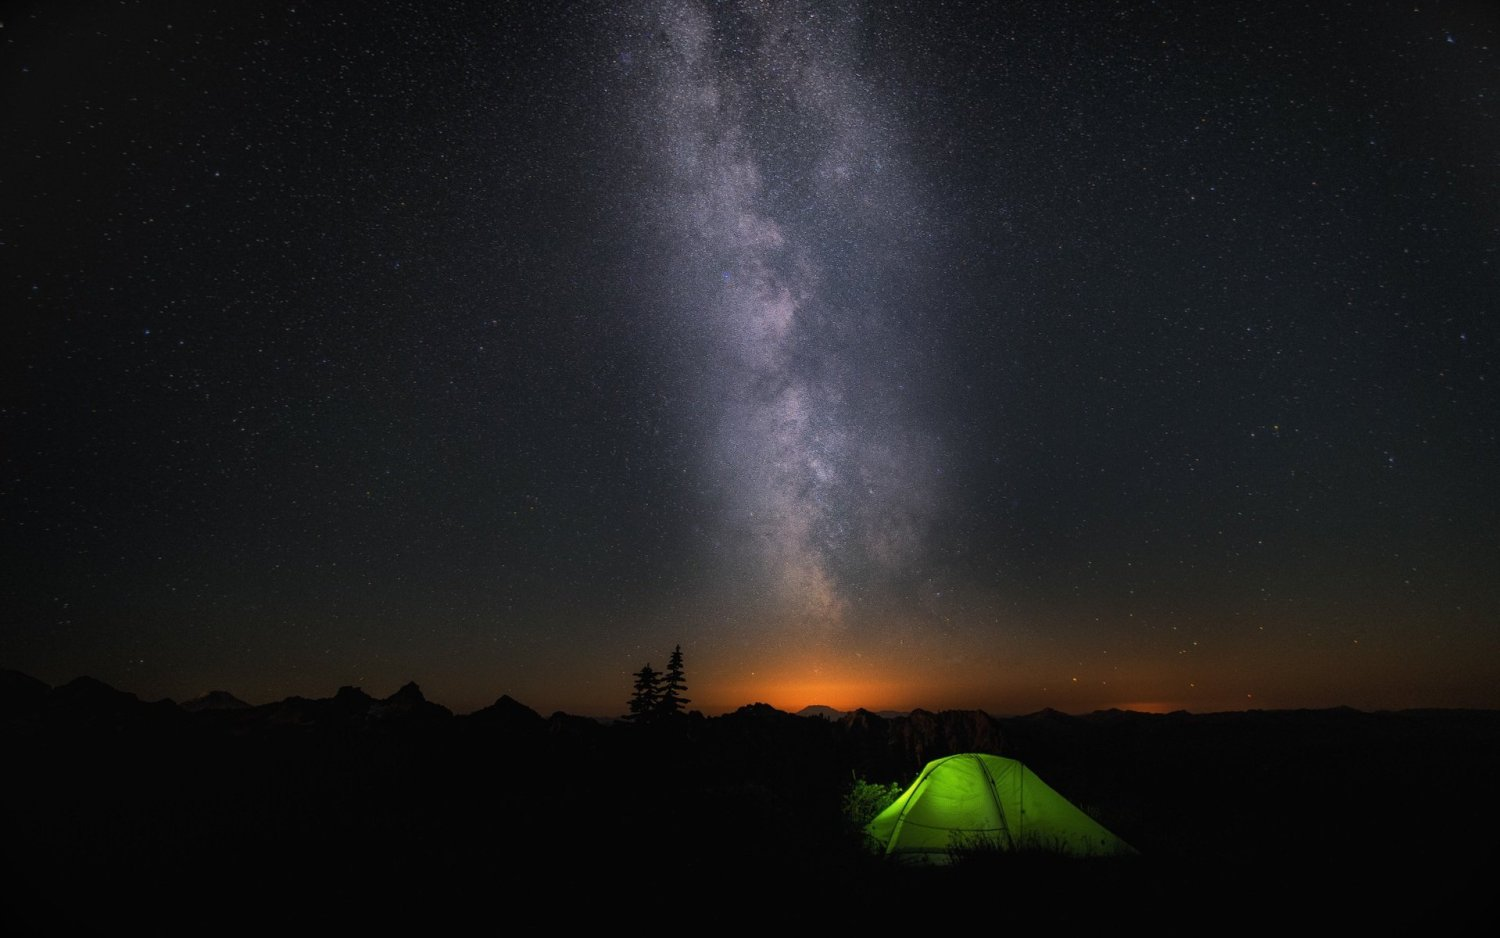 Camping Under The Stars 1